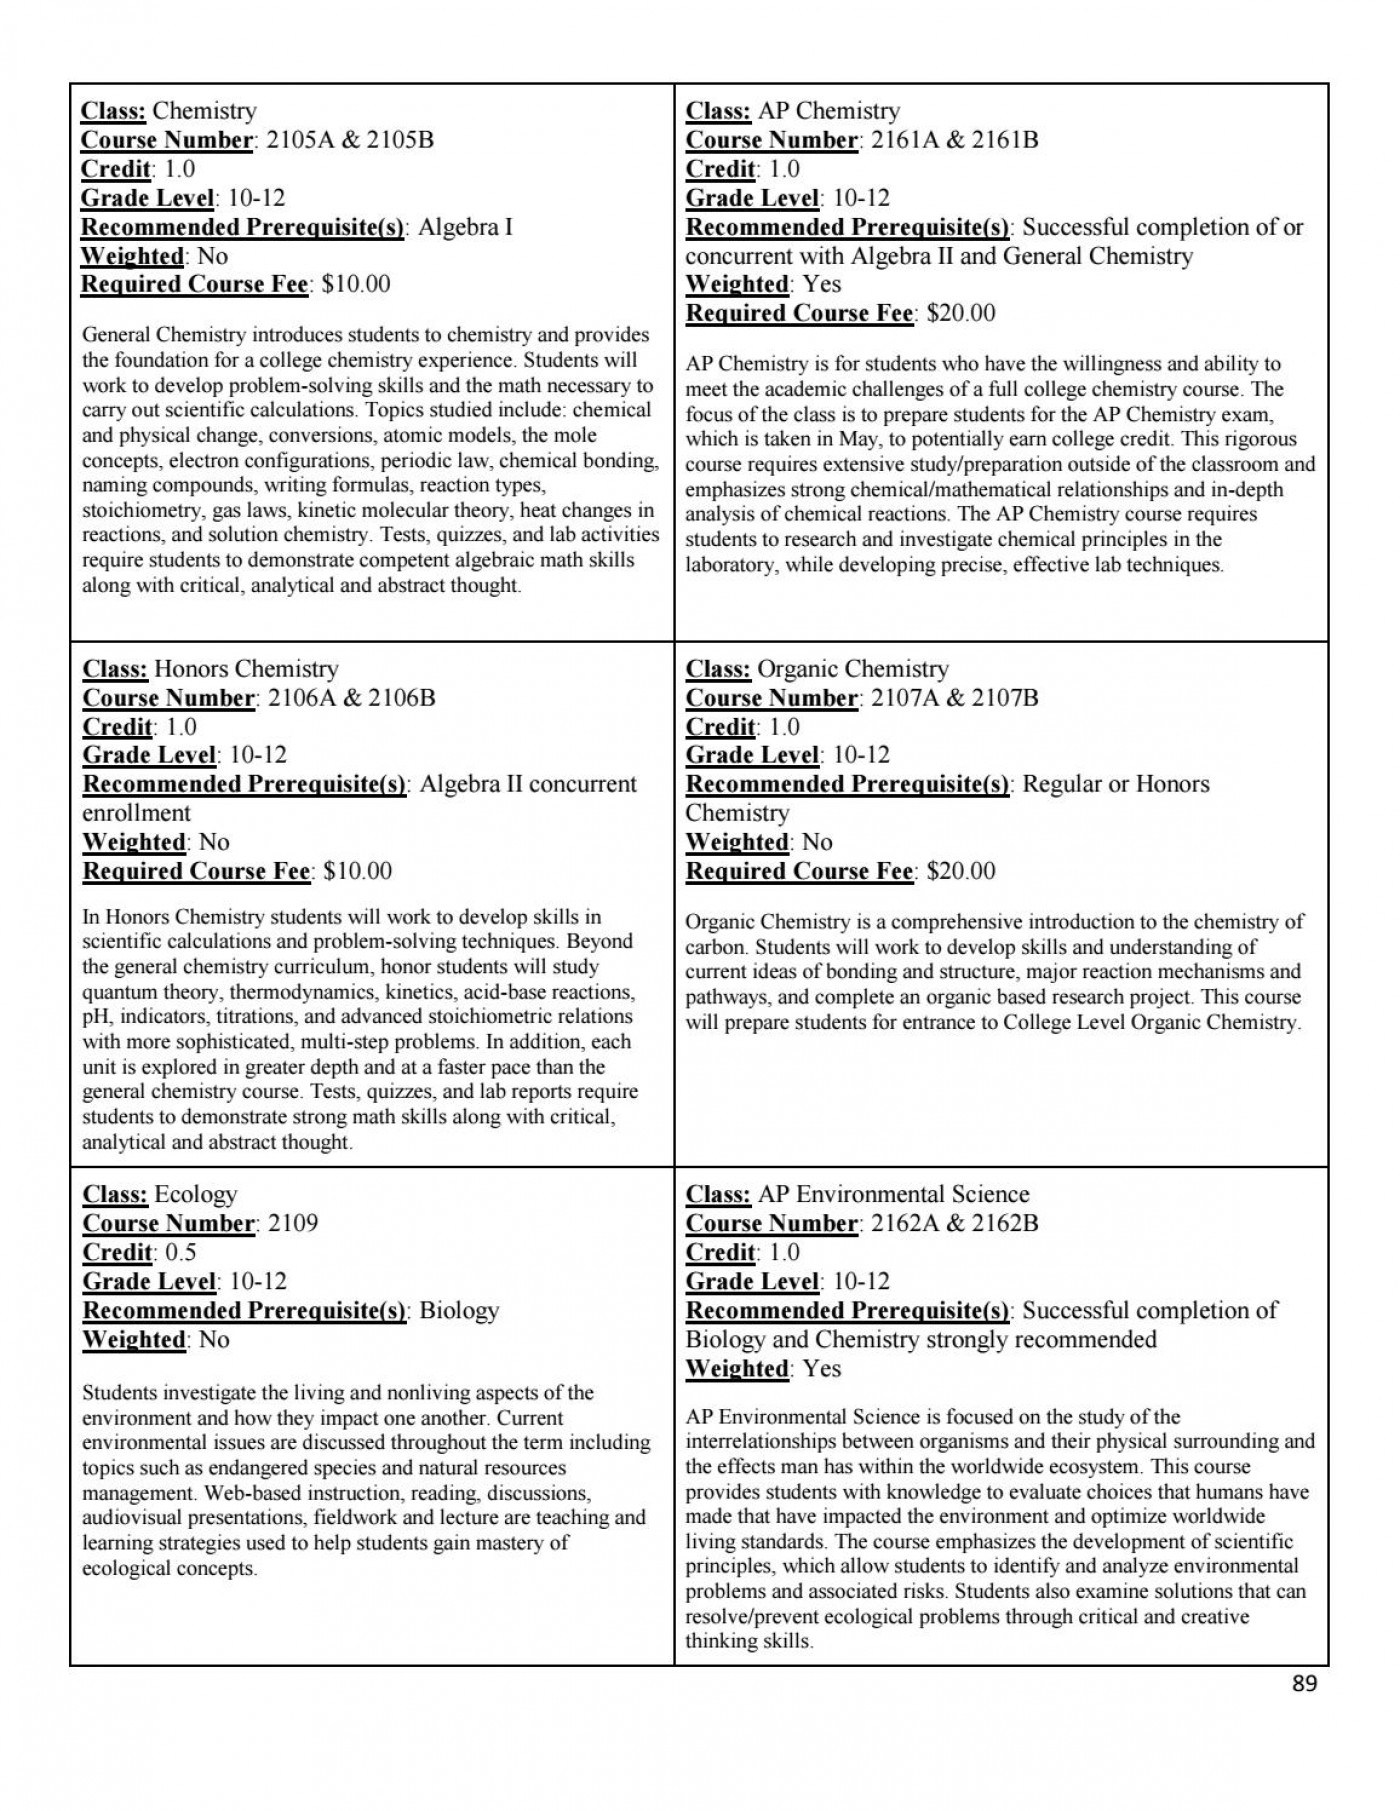 013 Research Paper Ap Chemistry Topics Page 89 Stirring 1400